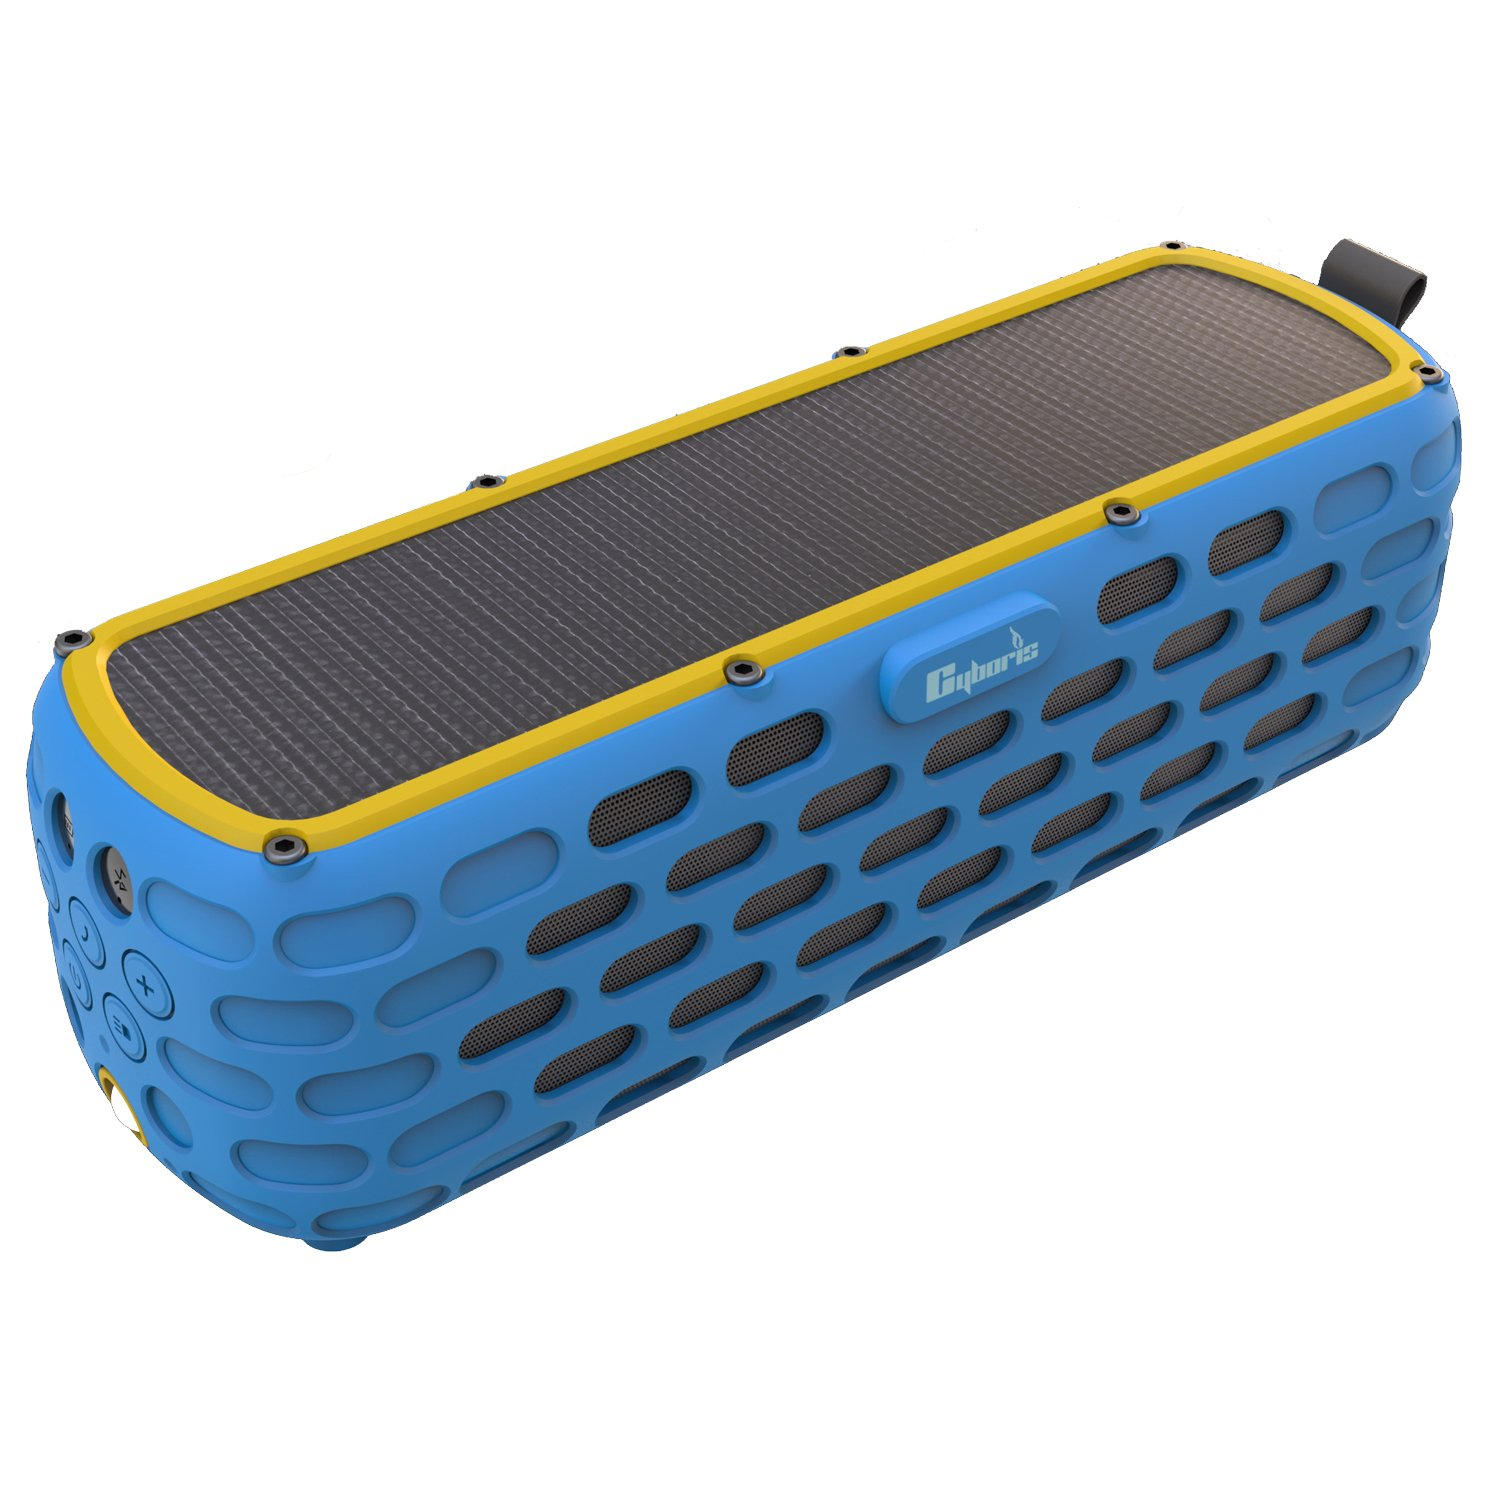 CYBORIS Portable Bluetooth Speaker Solar Powered Amplifier 30+ Hours Playtime HiFi Bass Stereo Sound Rugged Wireless Outdoor Speakers for Travel, Riding, Camping (The 2nd Generation ES-T63)